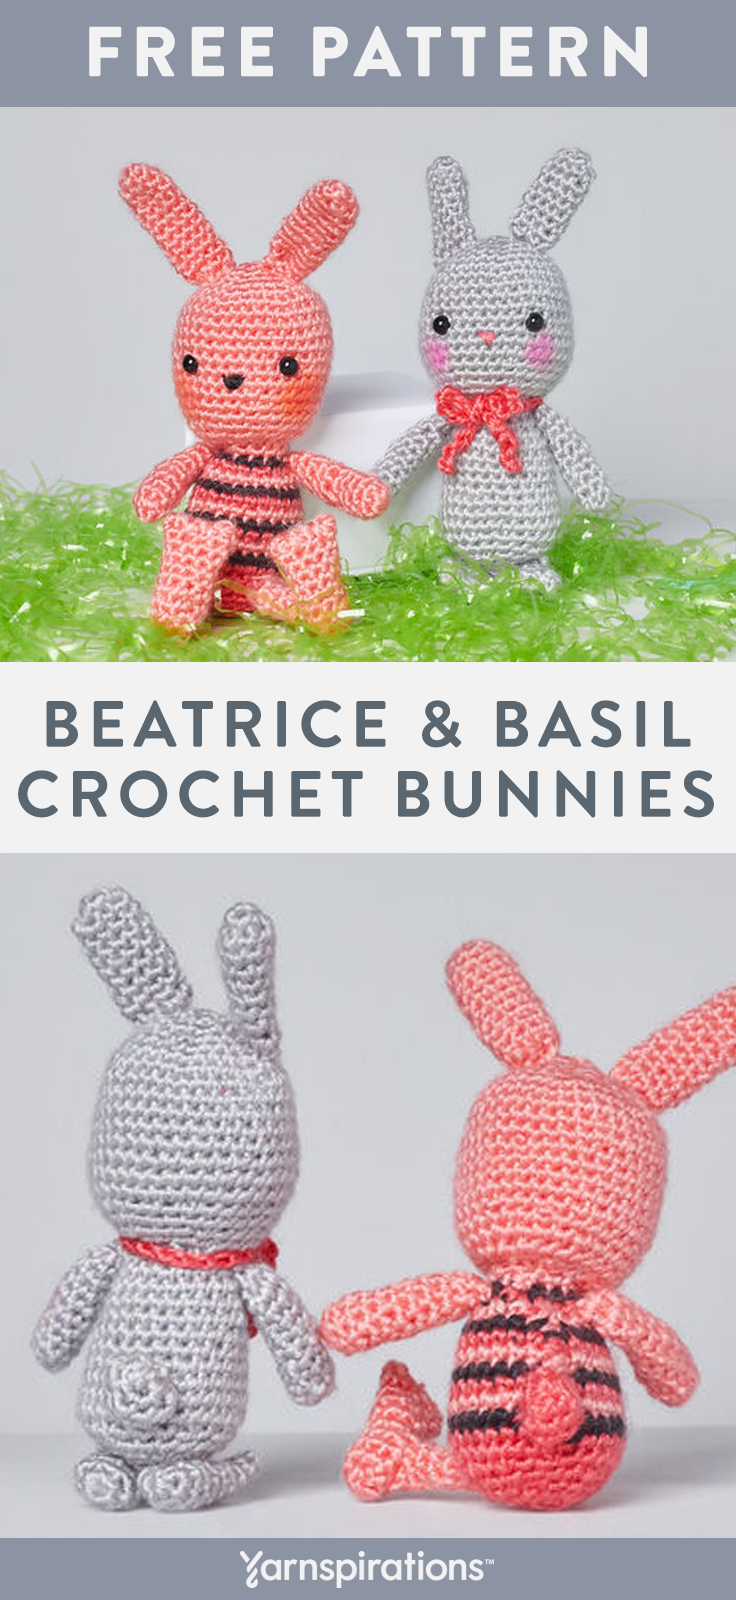 Free Beatrice and Basil Crochet Bunnies pattern using Red